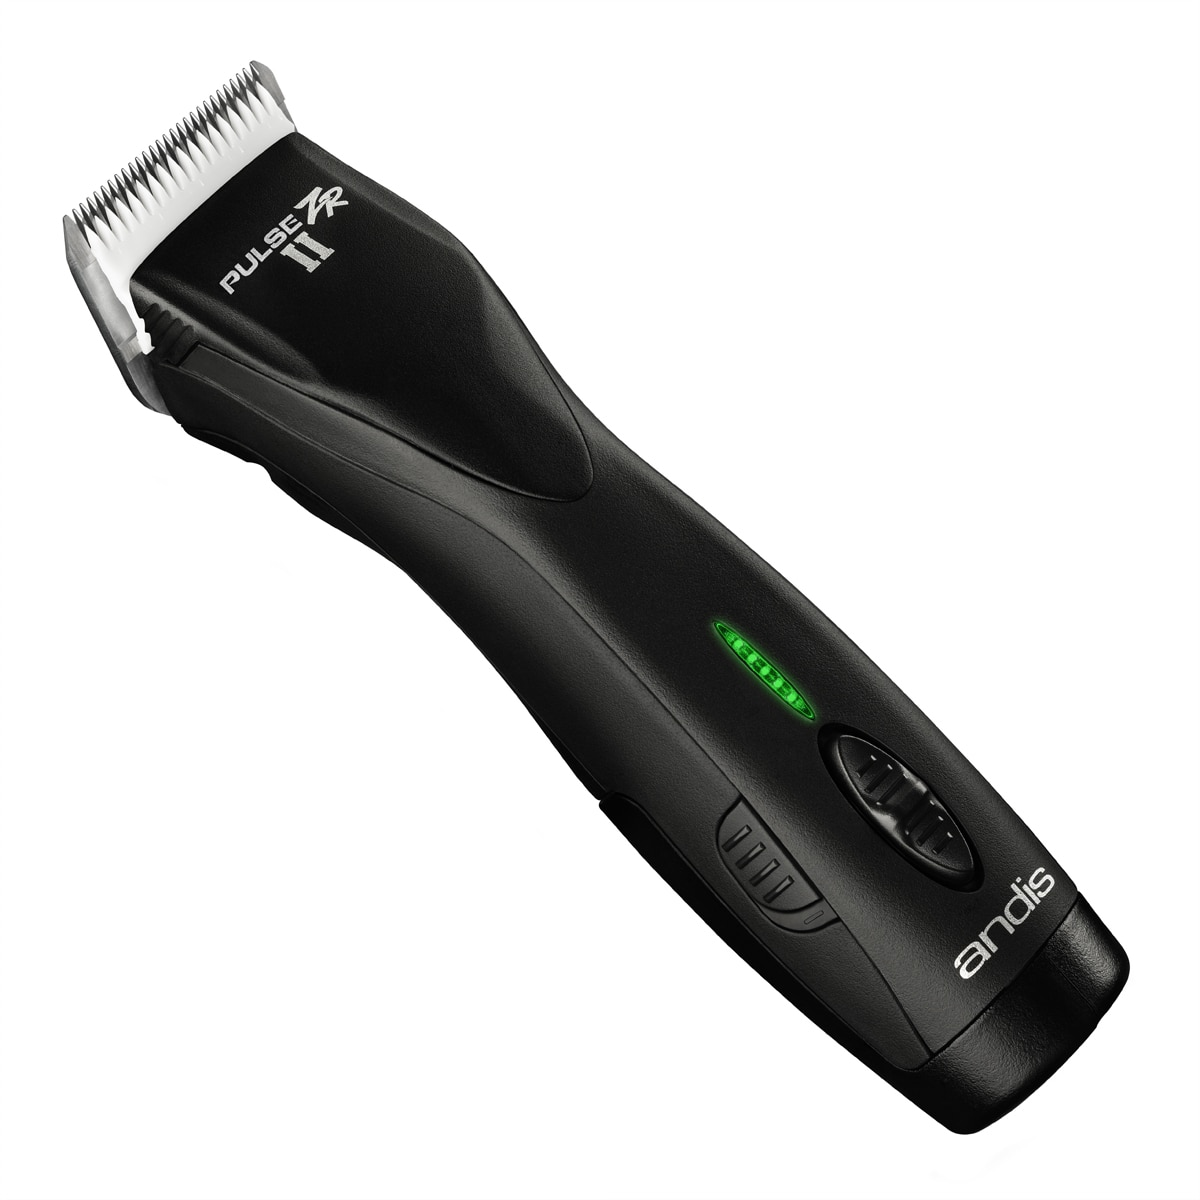 Andis Pulse ZRII Cordless Clipper w/ FREE Tackmate Clipper!